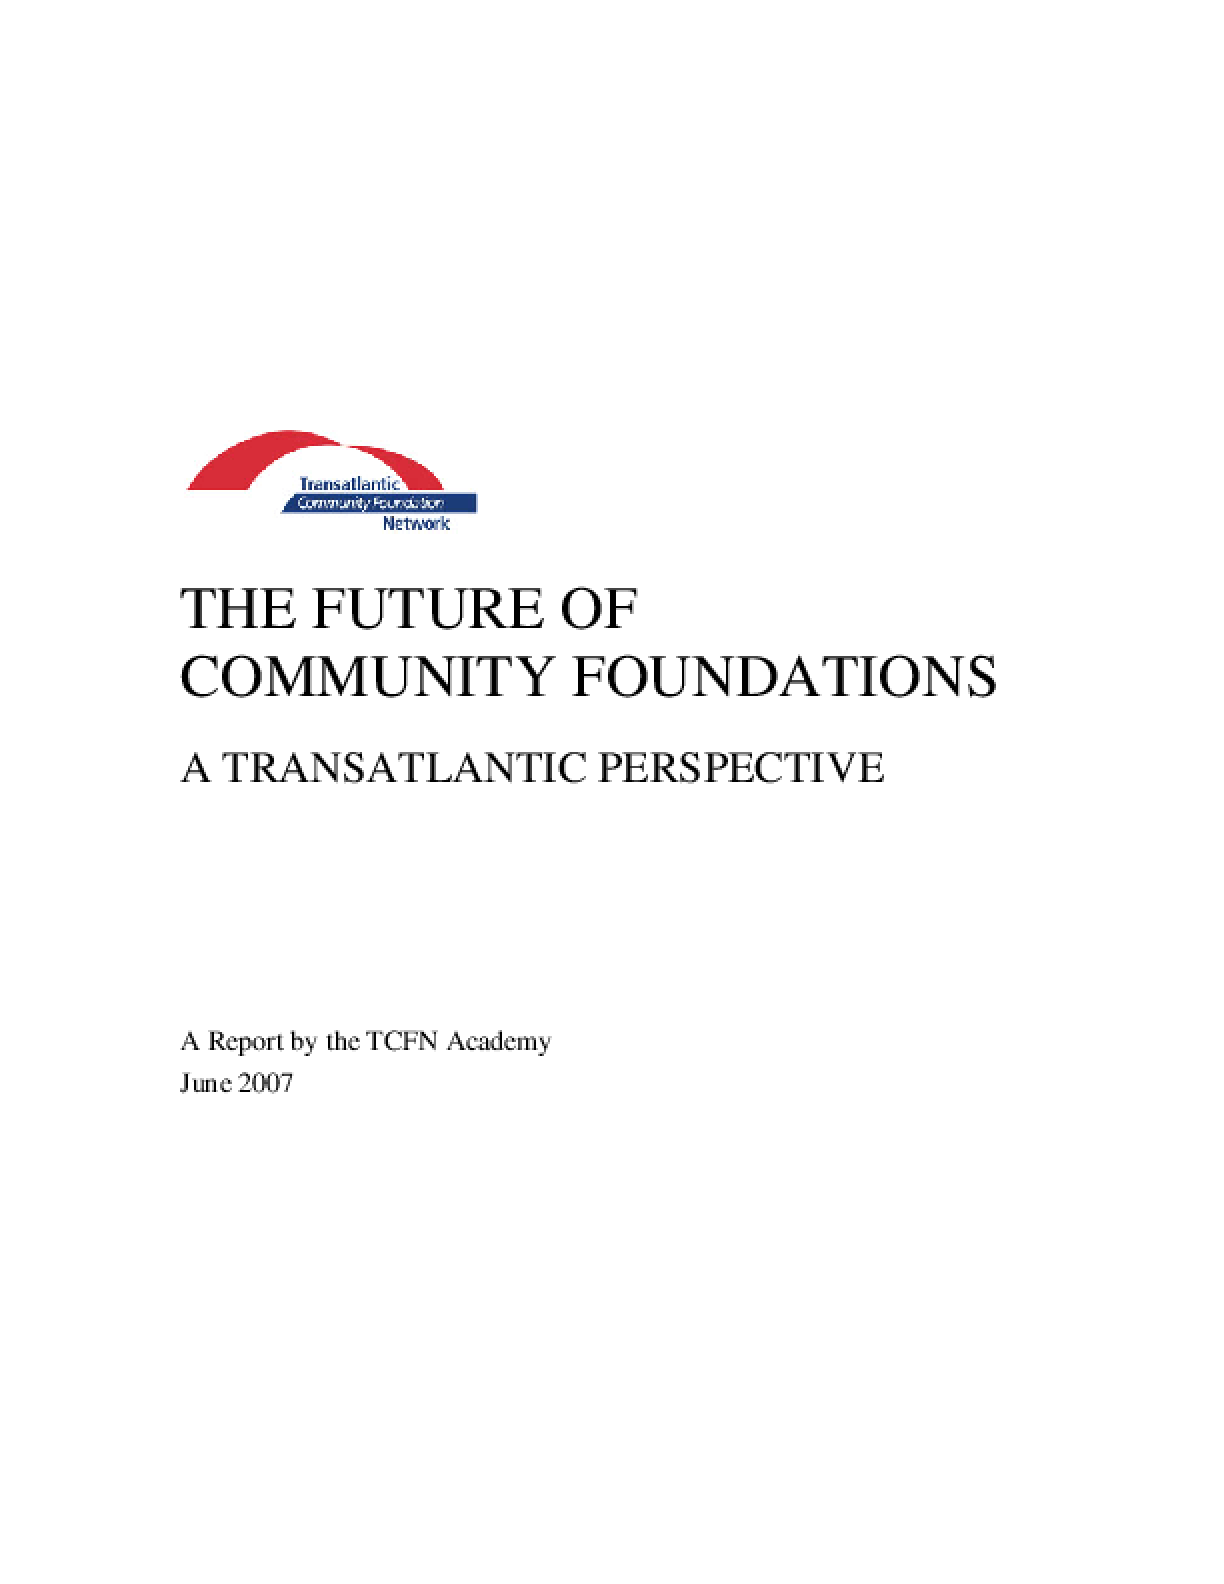 The Future of Community Foundations. A Transatlantic Perspective